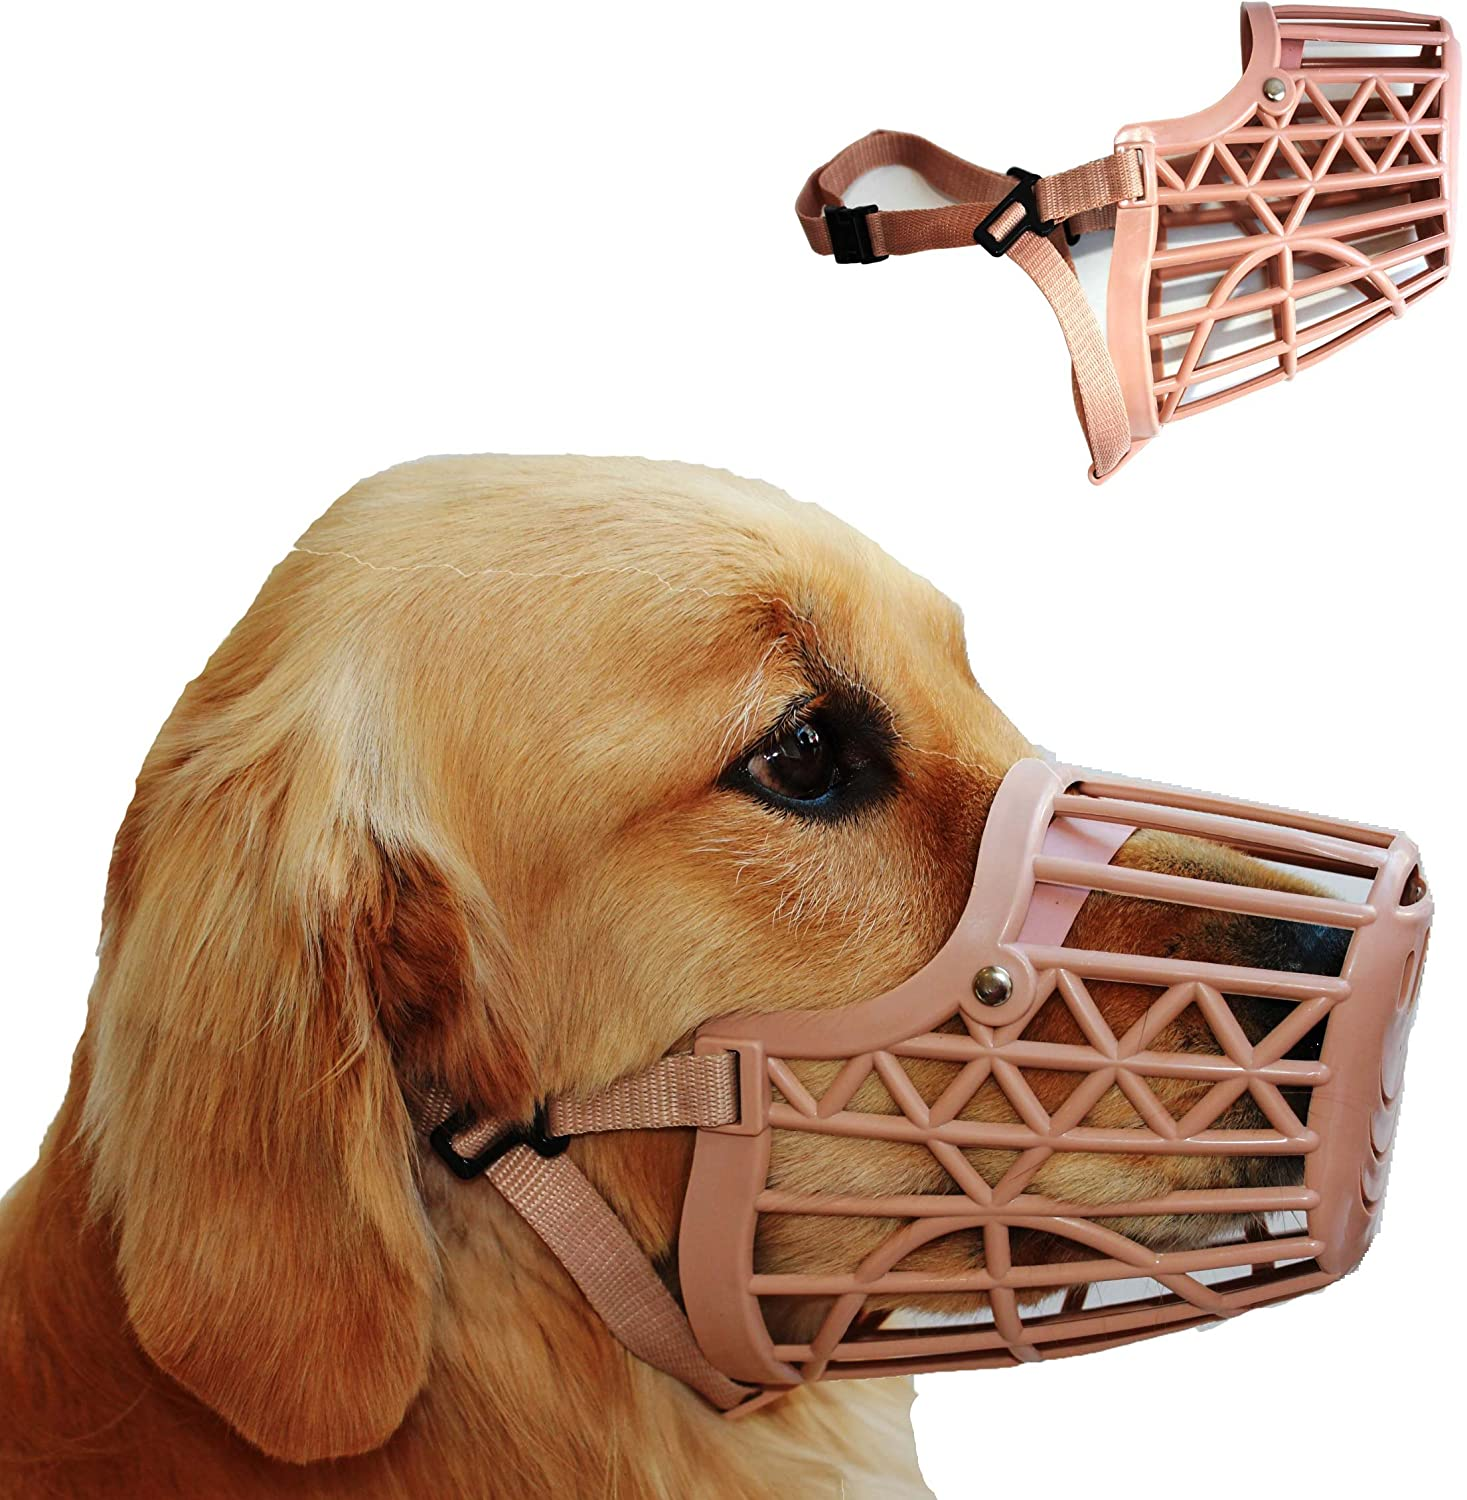 Downtown Pet Supply Basket Cage Dog Muzzles, Adjustable for Small, Medium and Large Dogs - Great for Training, Stops Biting